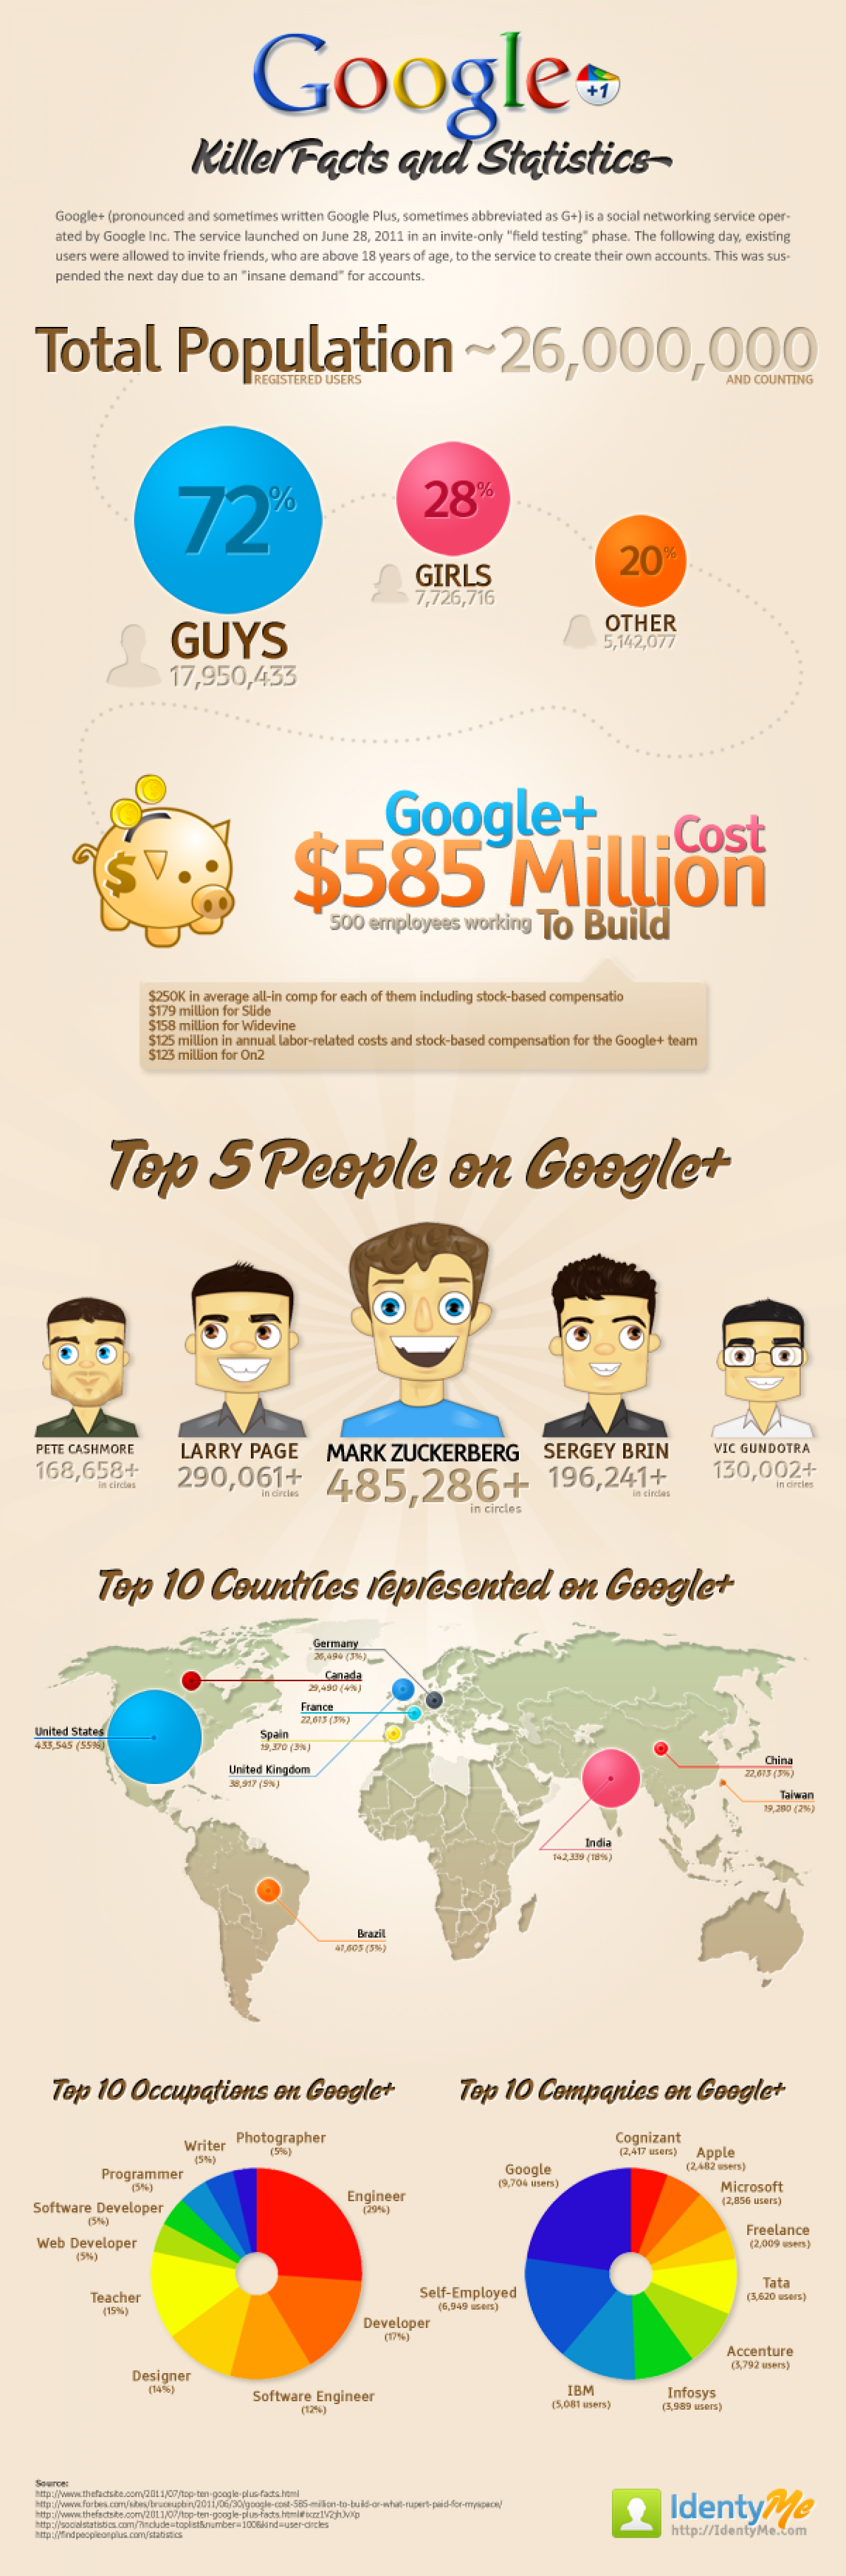 Google+ Killer Facts and Statistics Infographic